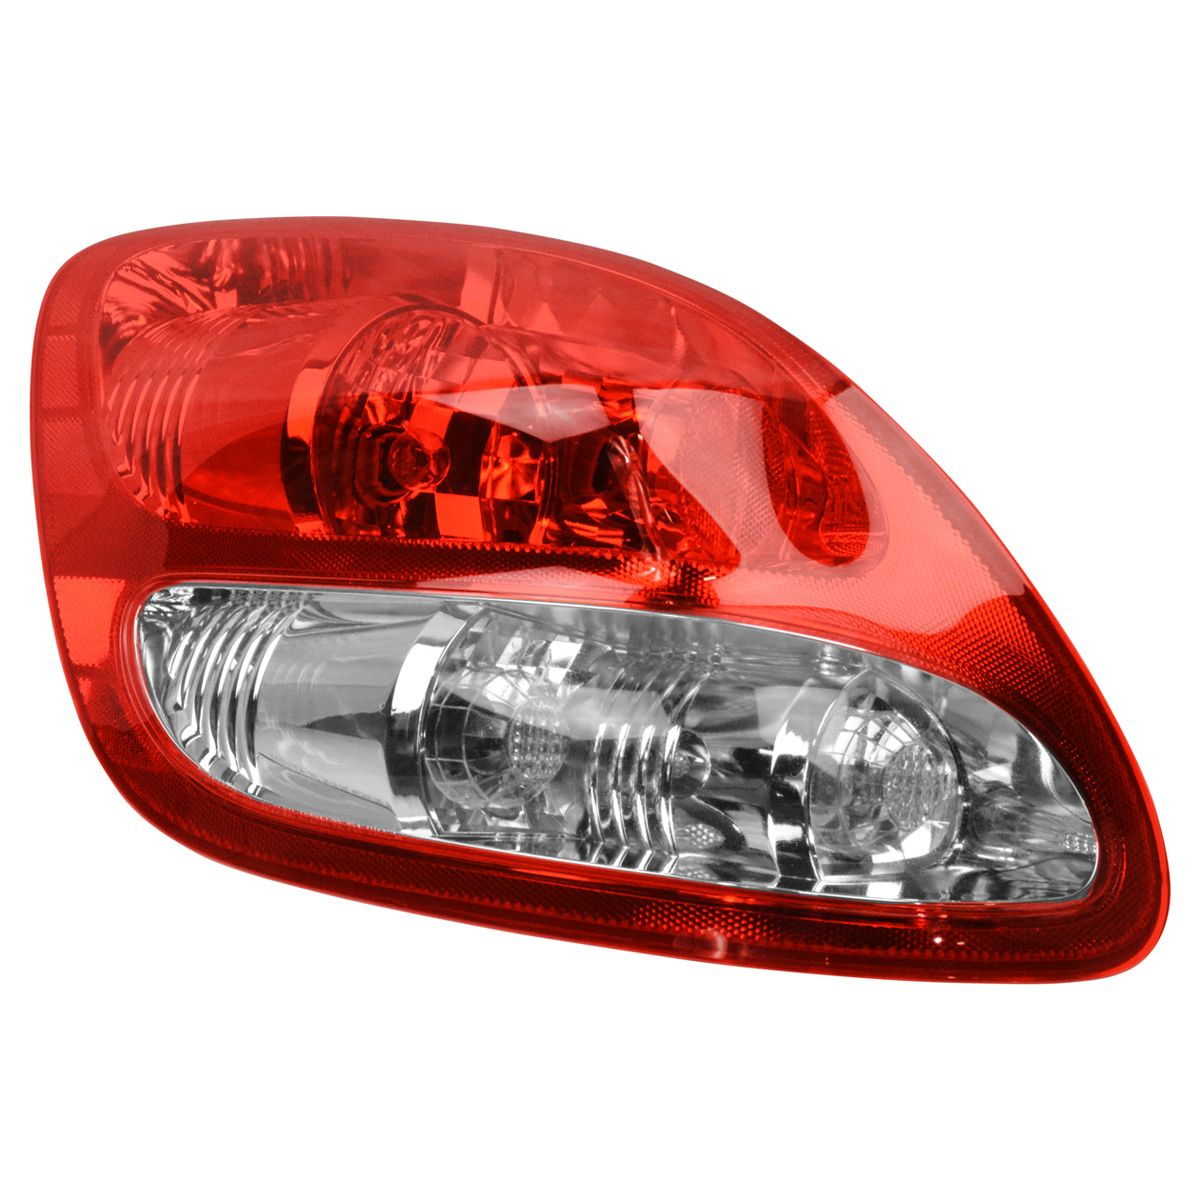 Tail Light Assembly Passenger Right Genuine 81550-0C030 For Toyota Tundra 03-06